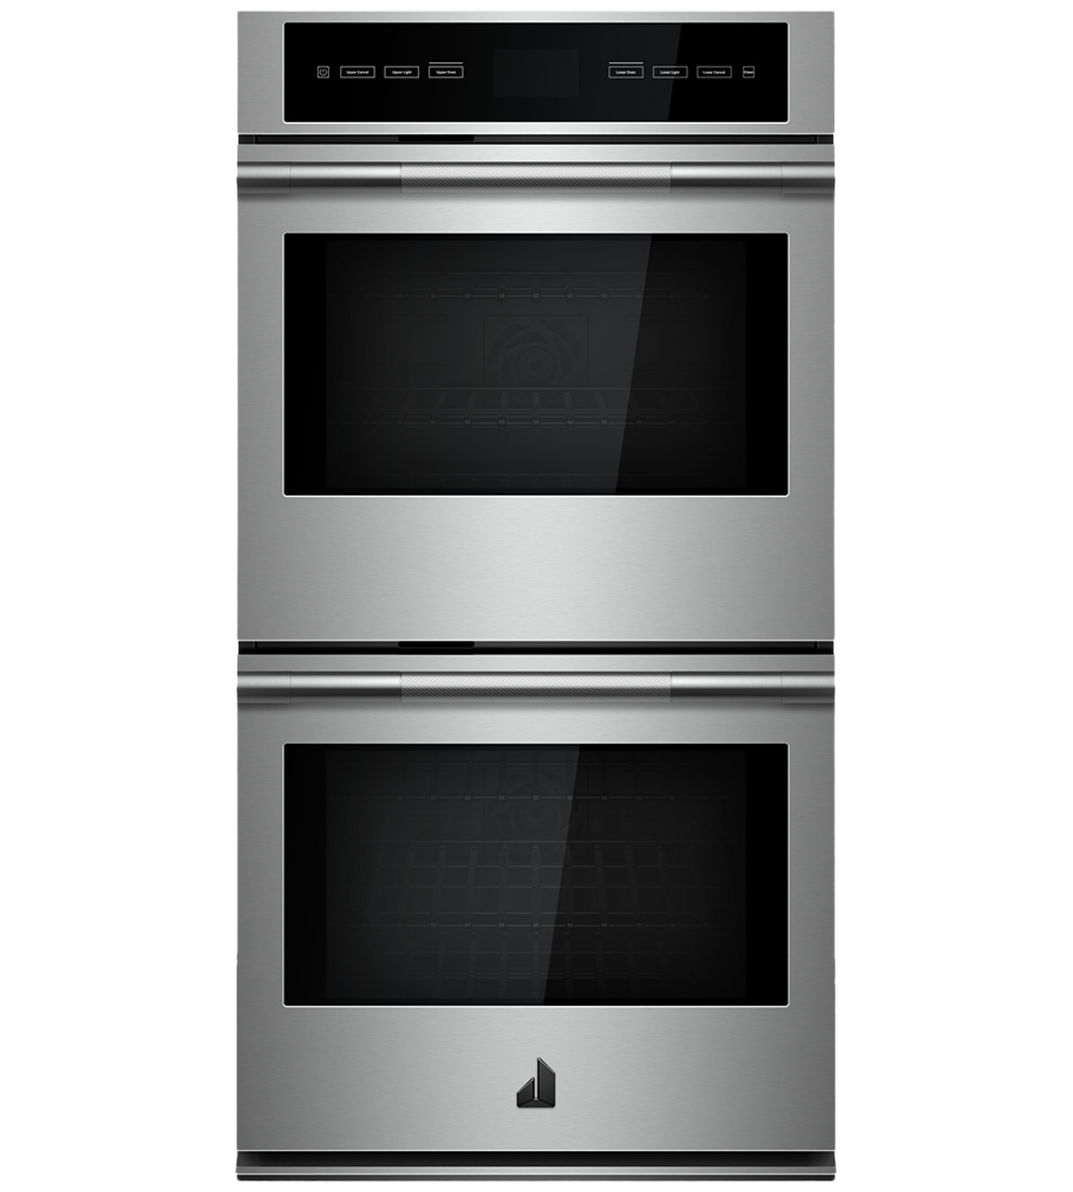 Jenn-Air Oven in Stainless Steel color showcased by Corbeil Electro Store